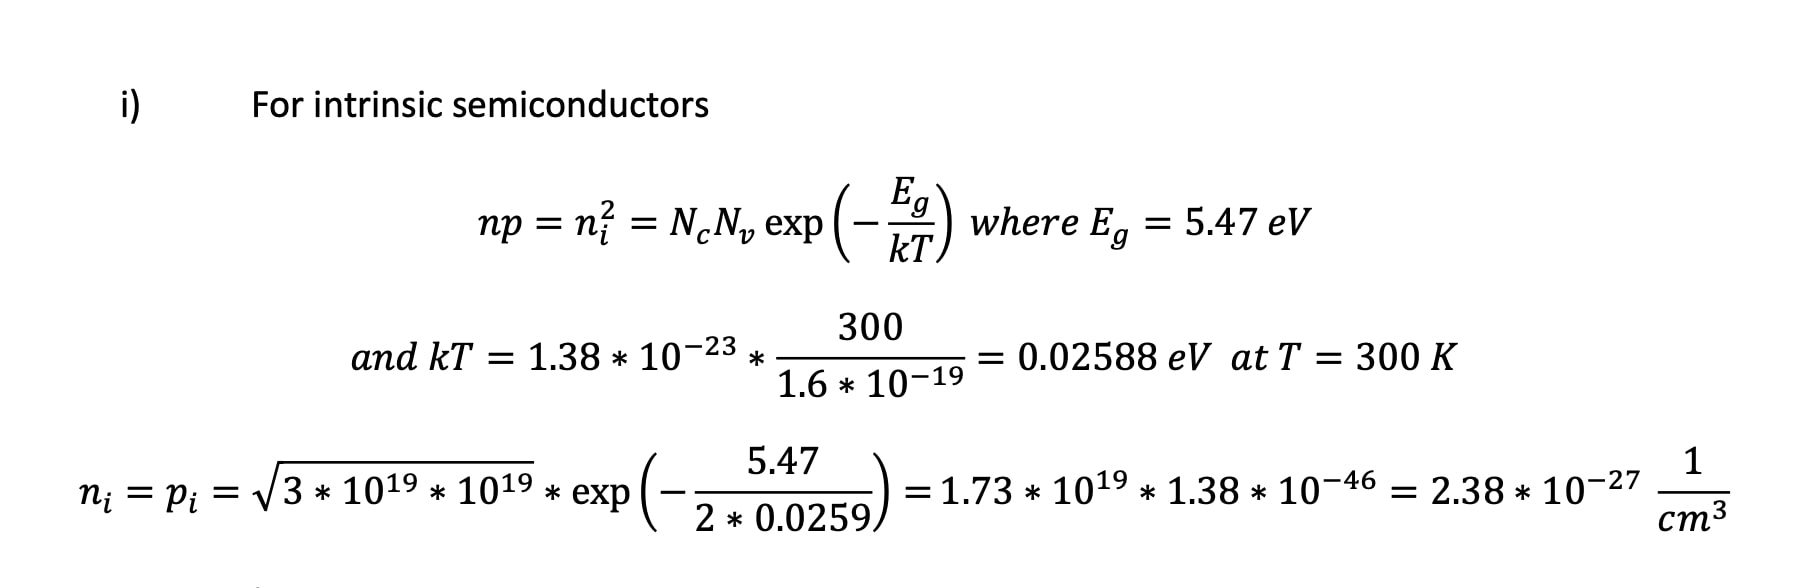 Semiconductor Physics Questions